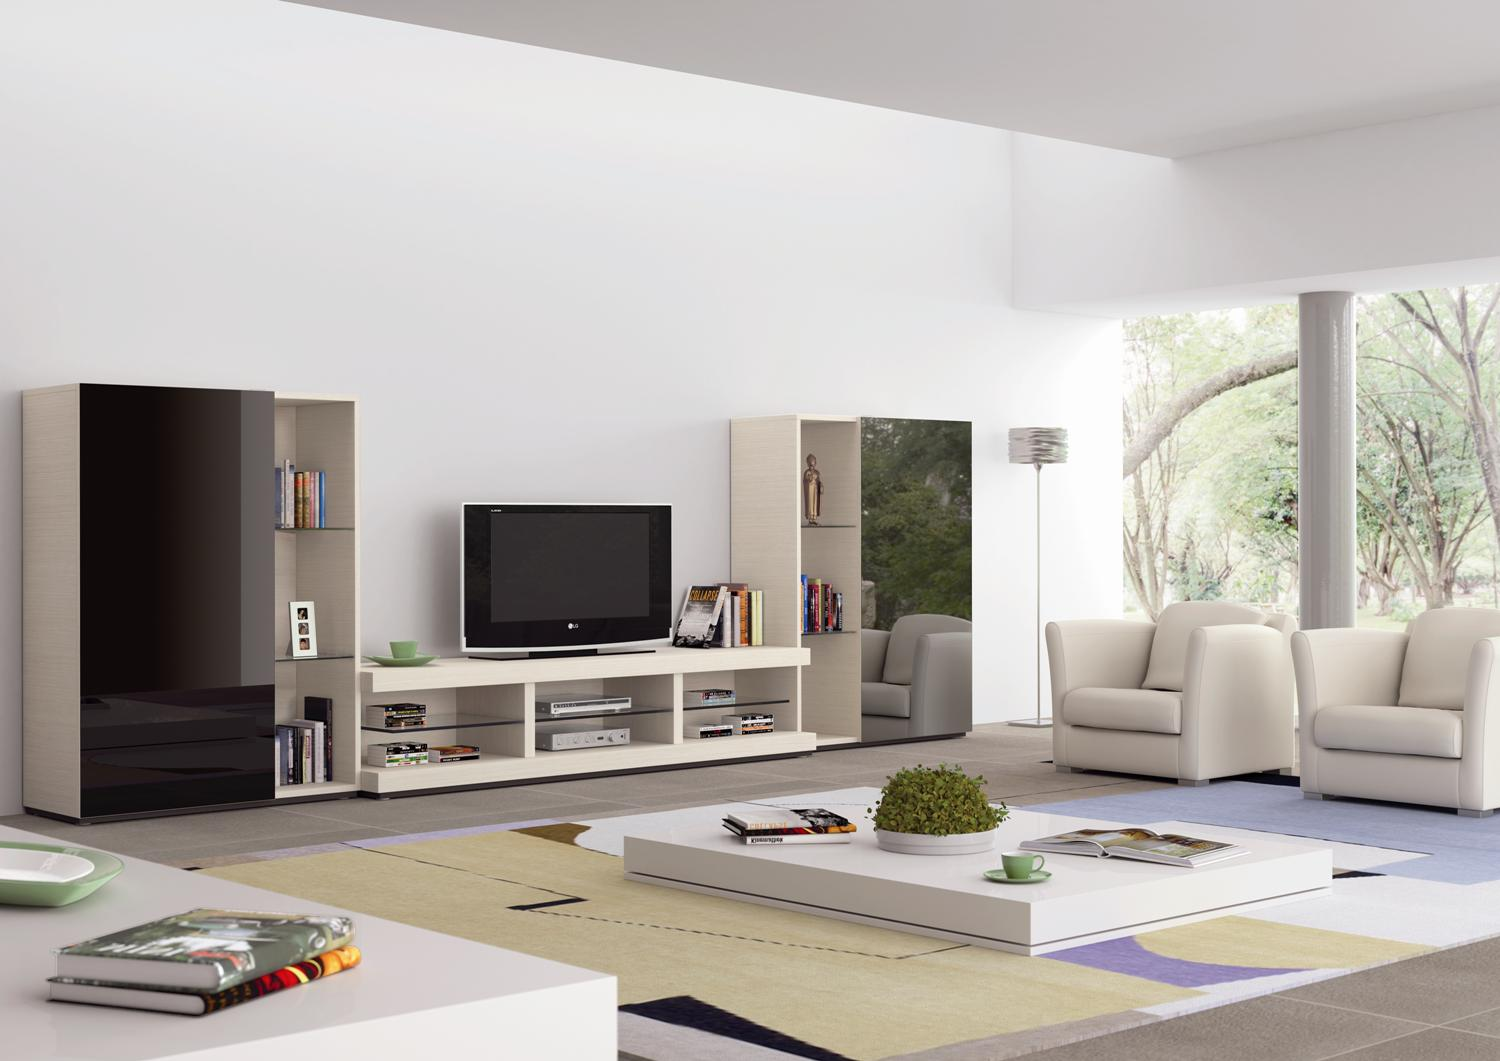 Muebles modernos ideas designs of home and garden for Muebles para television modernos